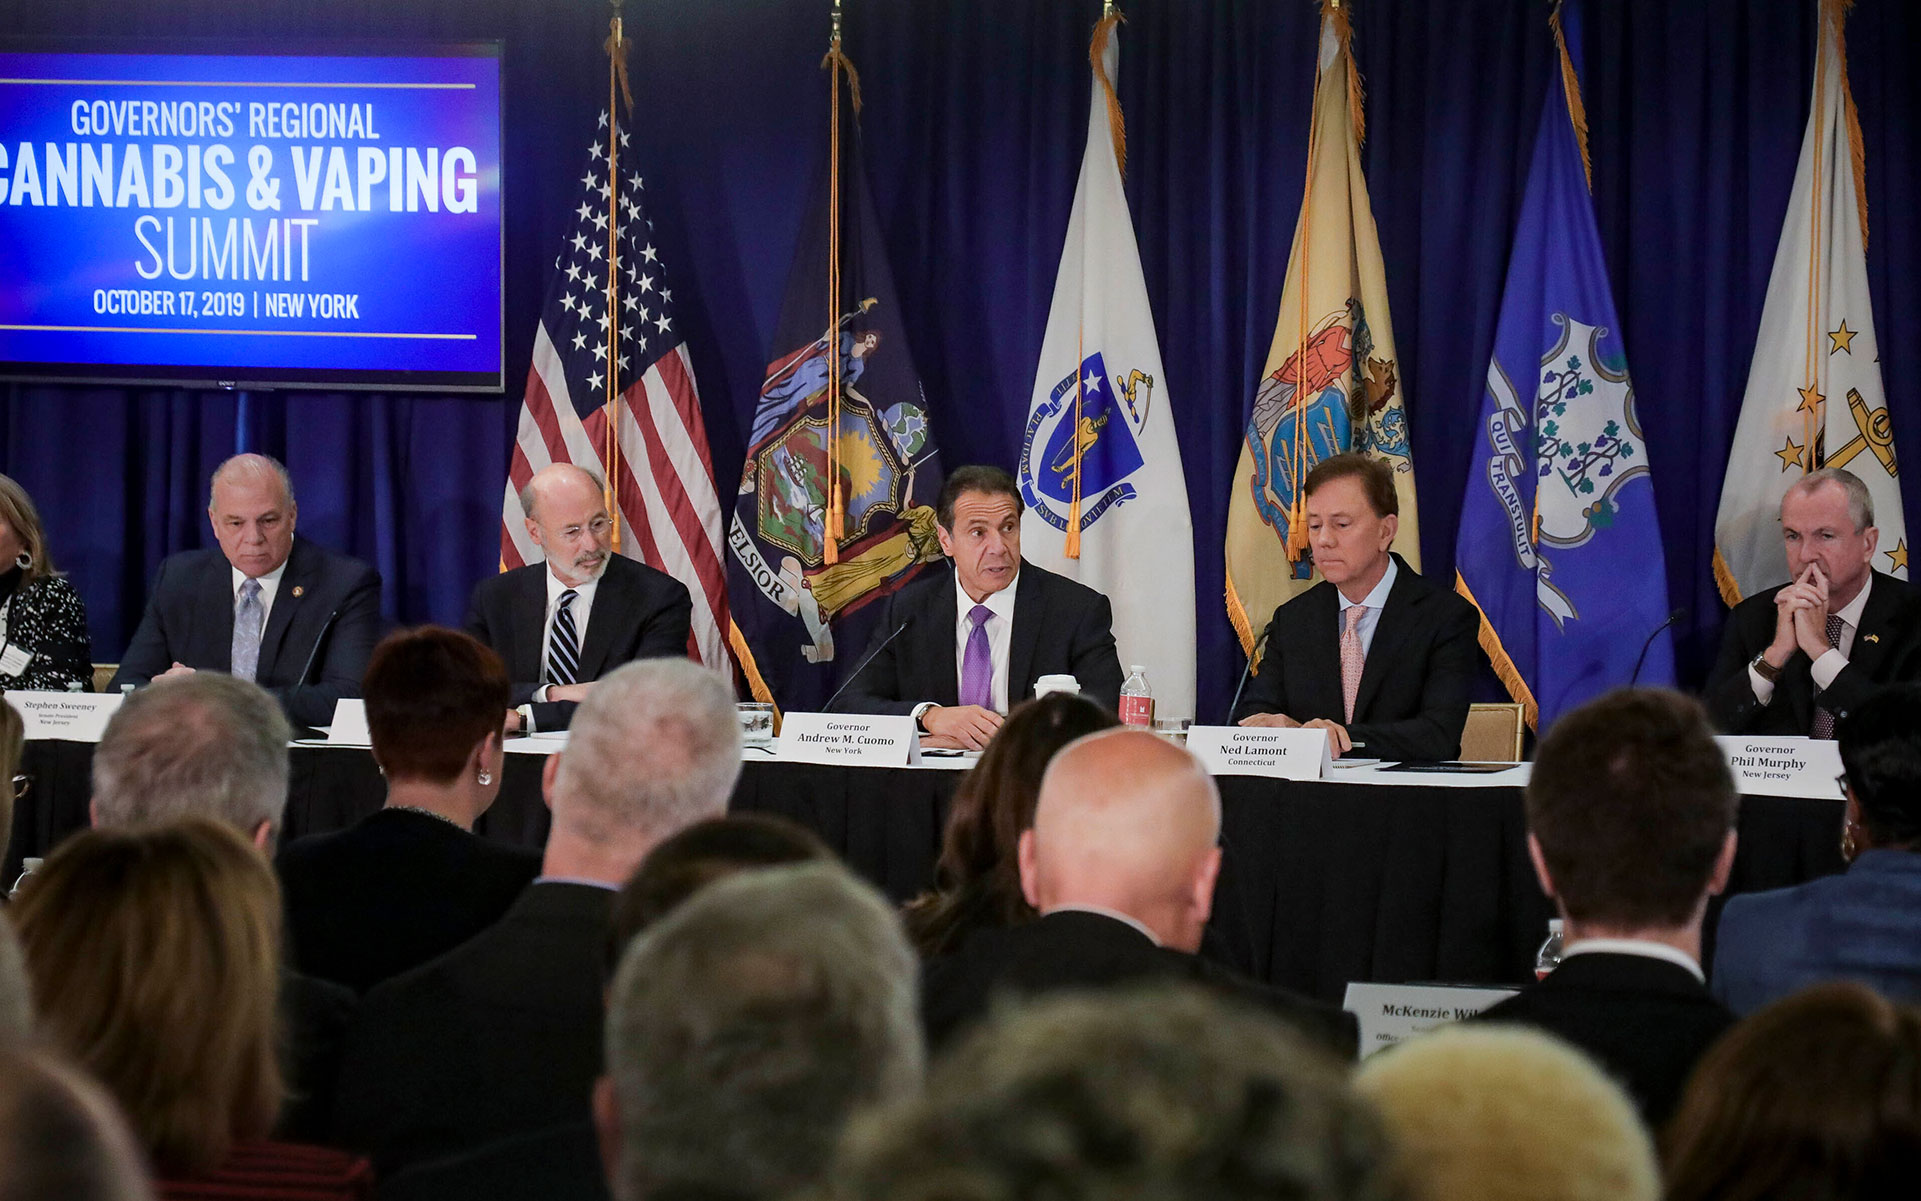 marijuana legalization new york — Pennsylvania Gov. Tom Wolf, third from left, New York Gov. Andrew Cuomo, center, Connecticut Gov. Ned Lamont, second from right, and New Jersey Gov. Phil Murphy, right, co-host a regional summit on public health issues around cannabis and vaping, Thursday Oct. 17, 2019, in New York. Unregulated THC products in Northeast states have sickened hundreds and killed several residents there this fall. (Bebeto Matthews/AP)